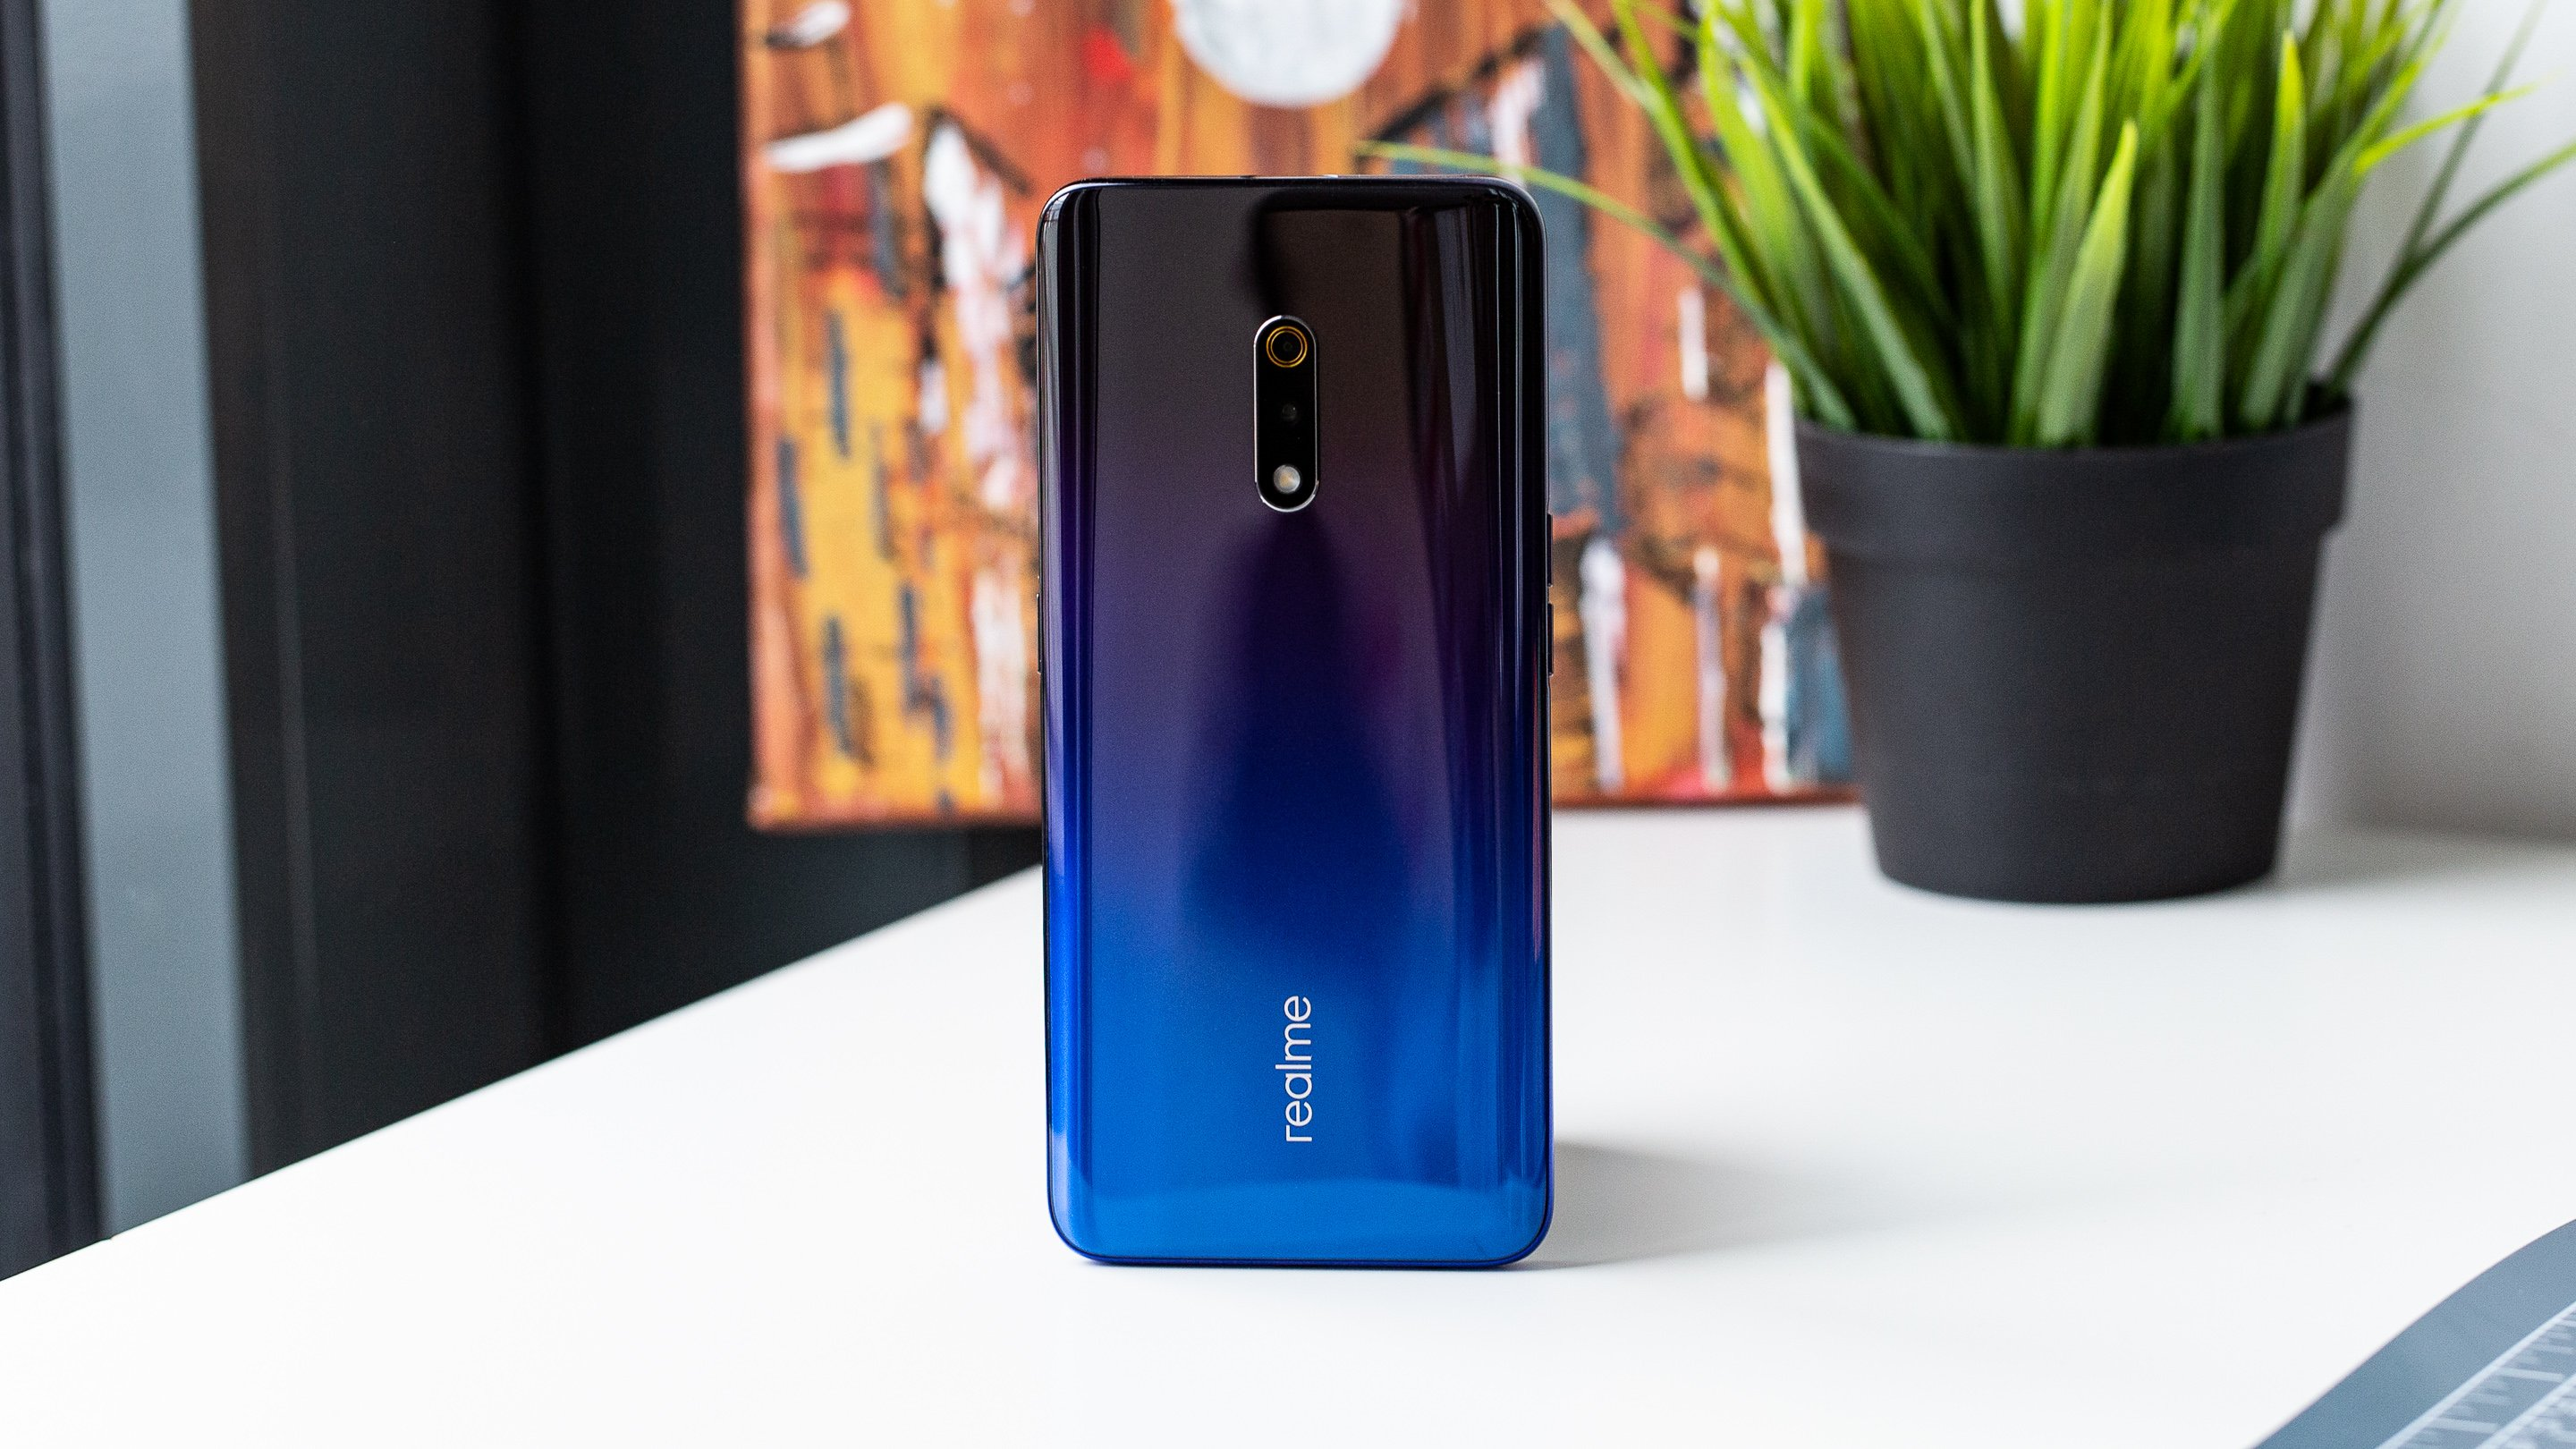 Realme X review: a quality-to-price ratio that's tough to